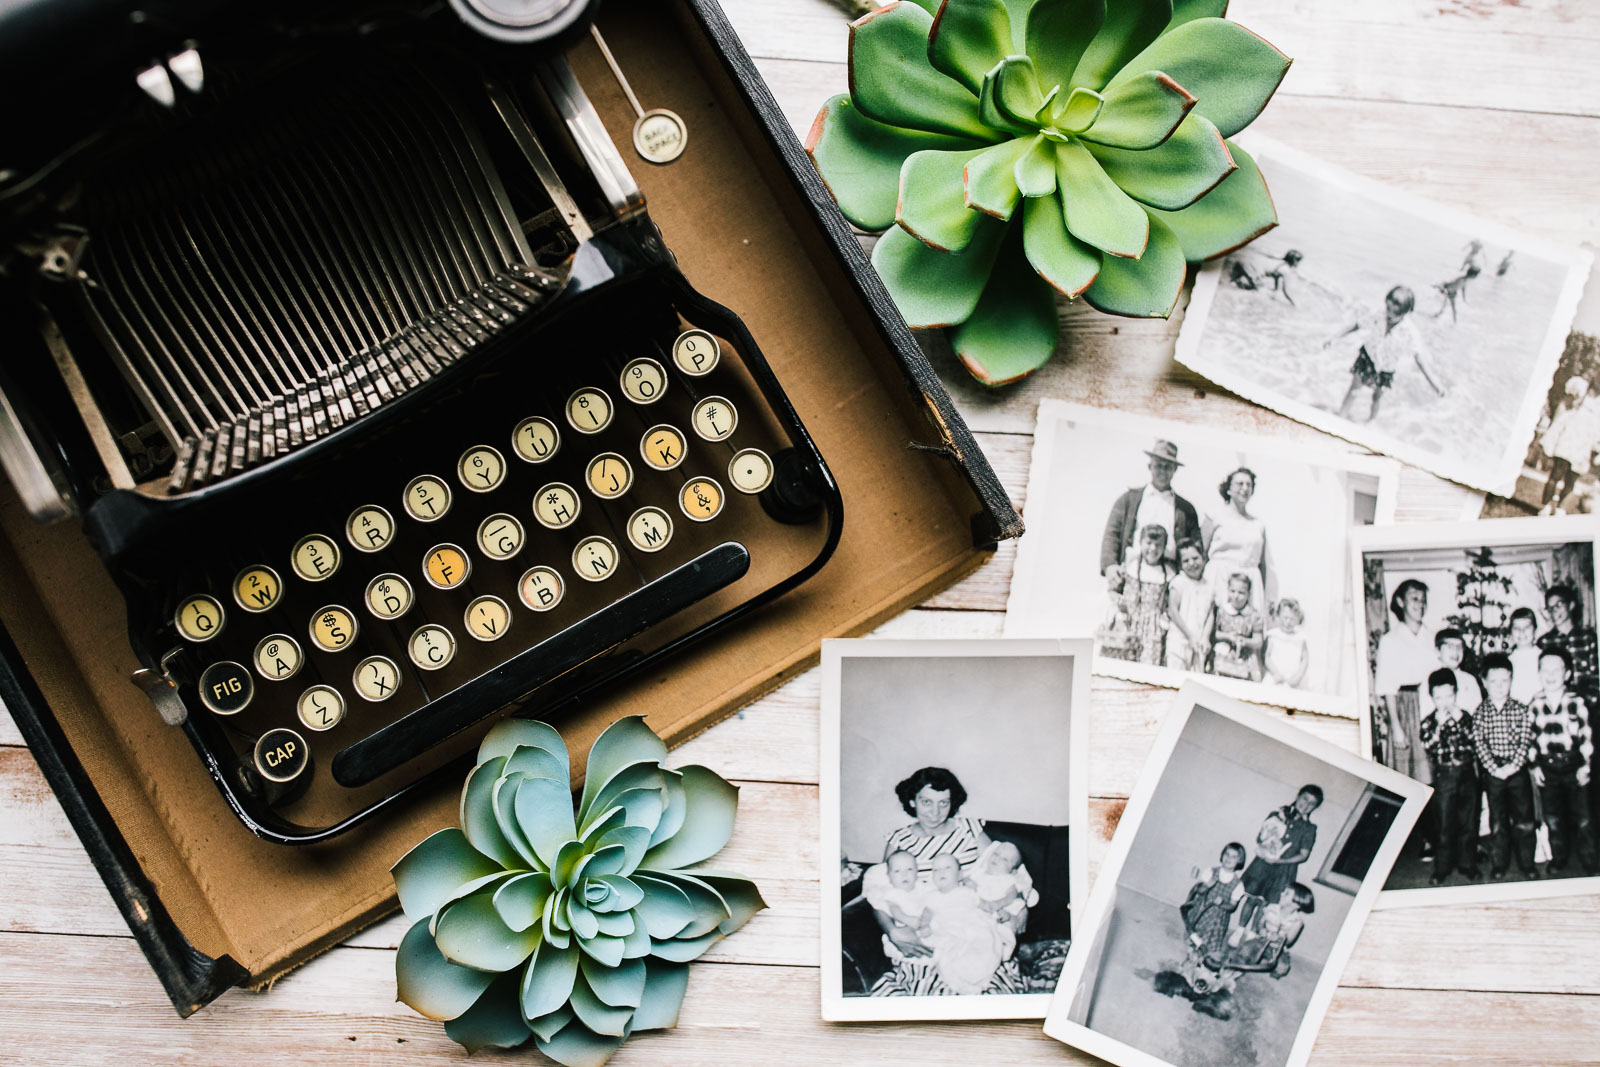 Diversify your blog - add personal content to attract your ideal clients.